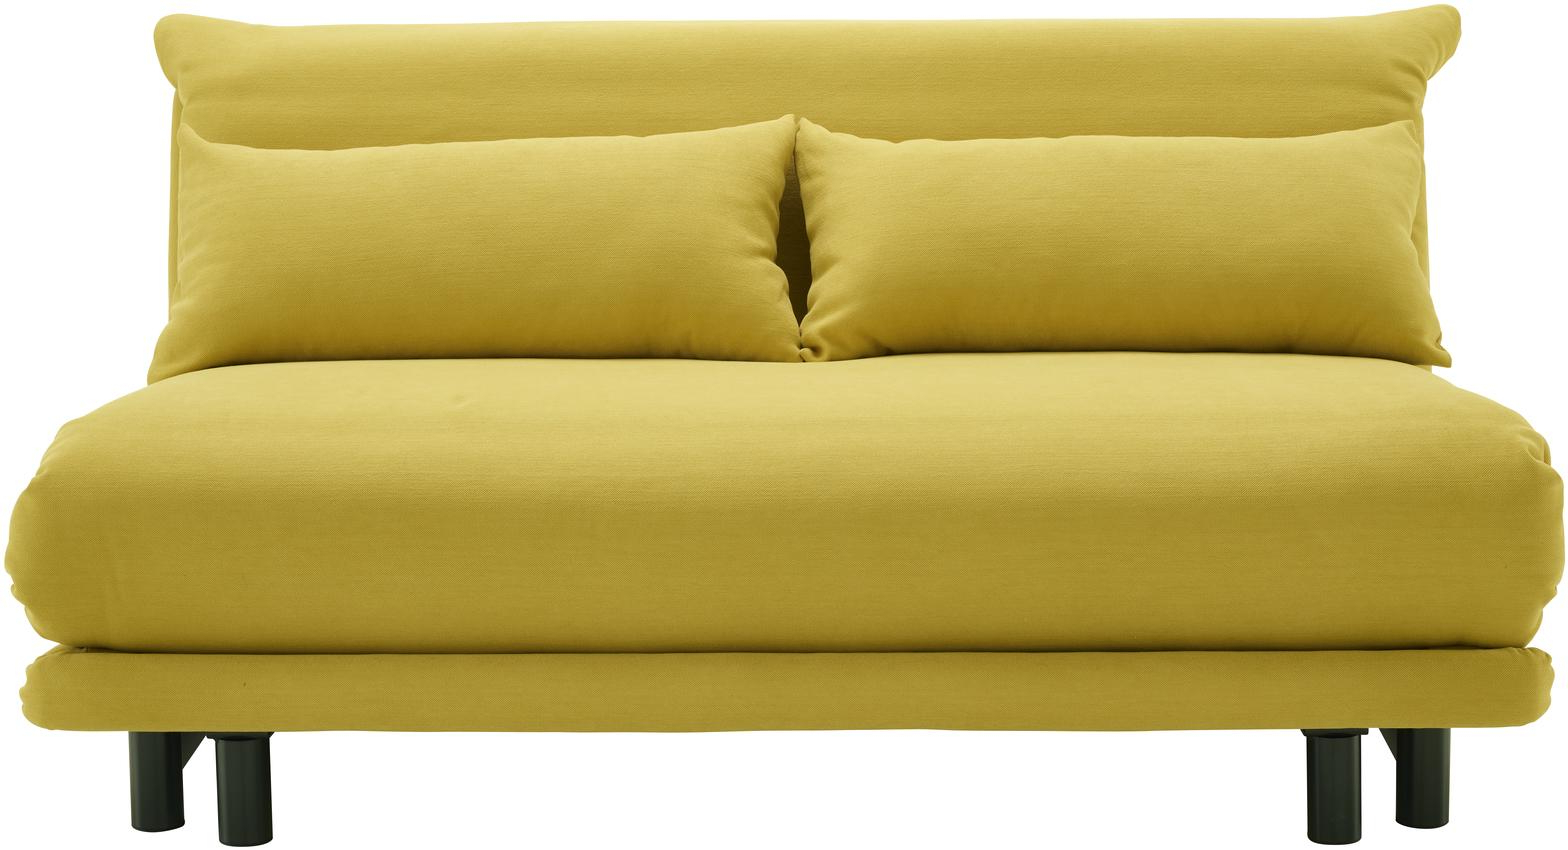 Dayse Contemporary Loveseats With Cushion Regarding Latest Ligne Roset Official Site – Contemporary Design Furniture (View 16 of 25)